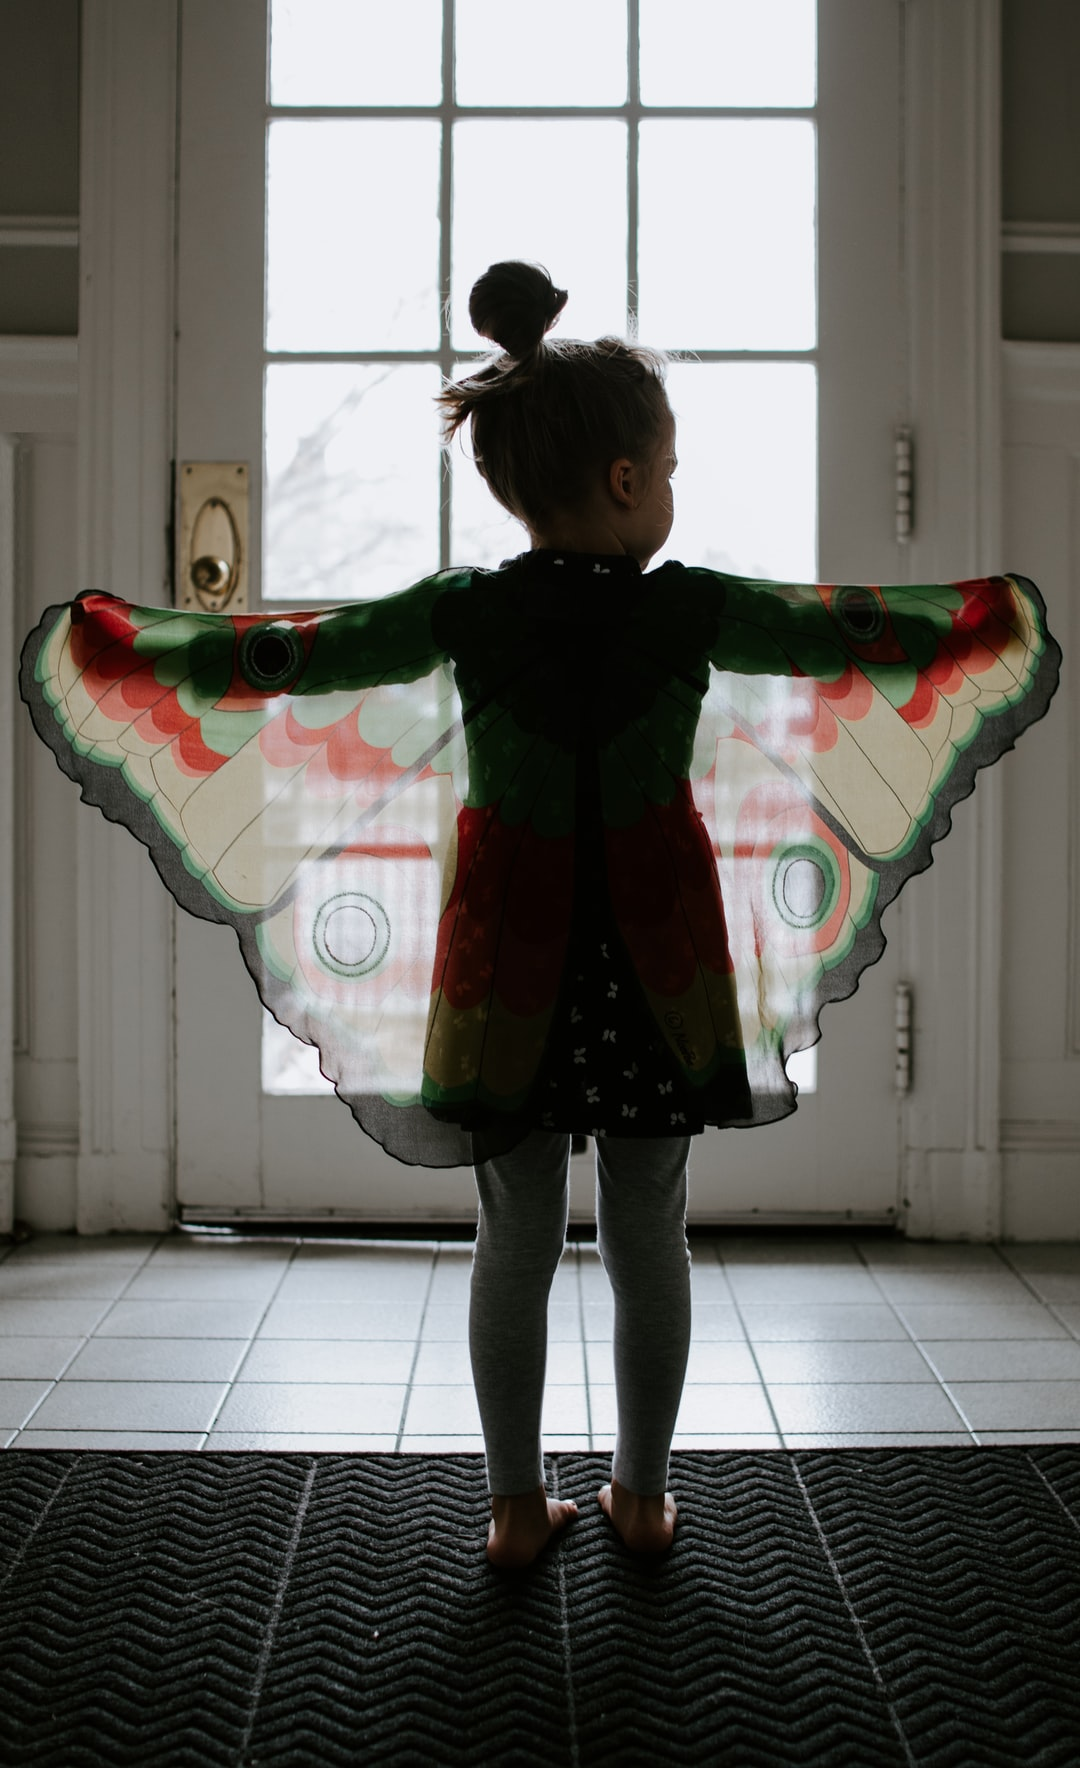 Little girl standing in a doorway with butterfly wings